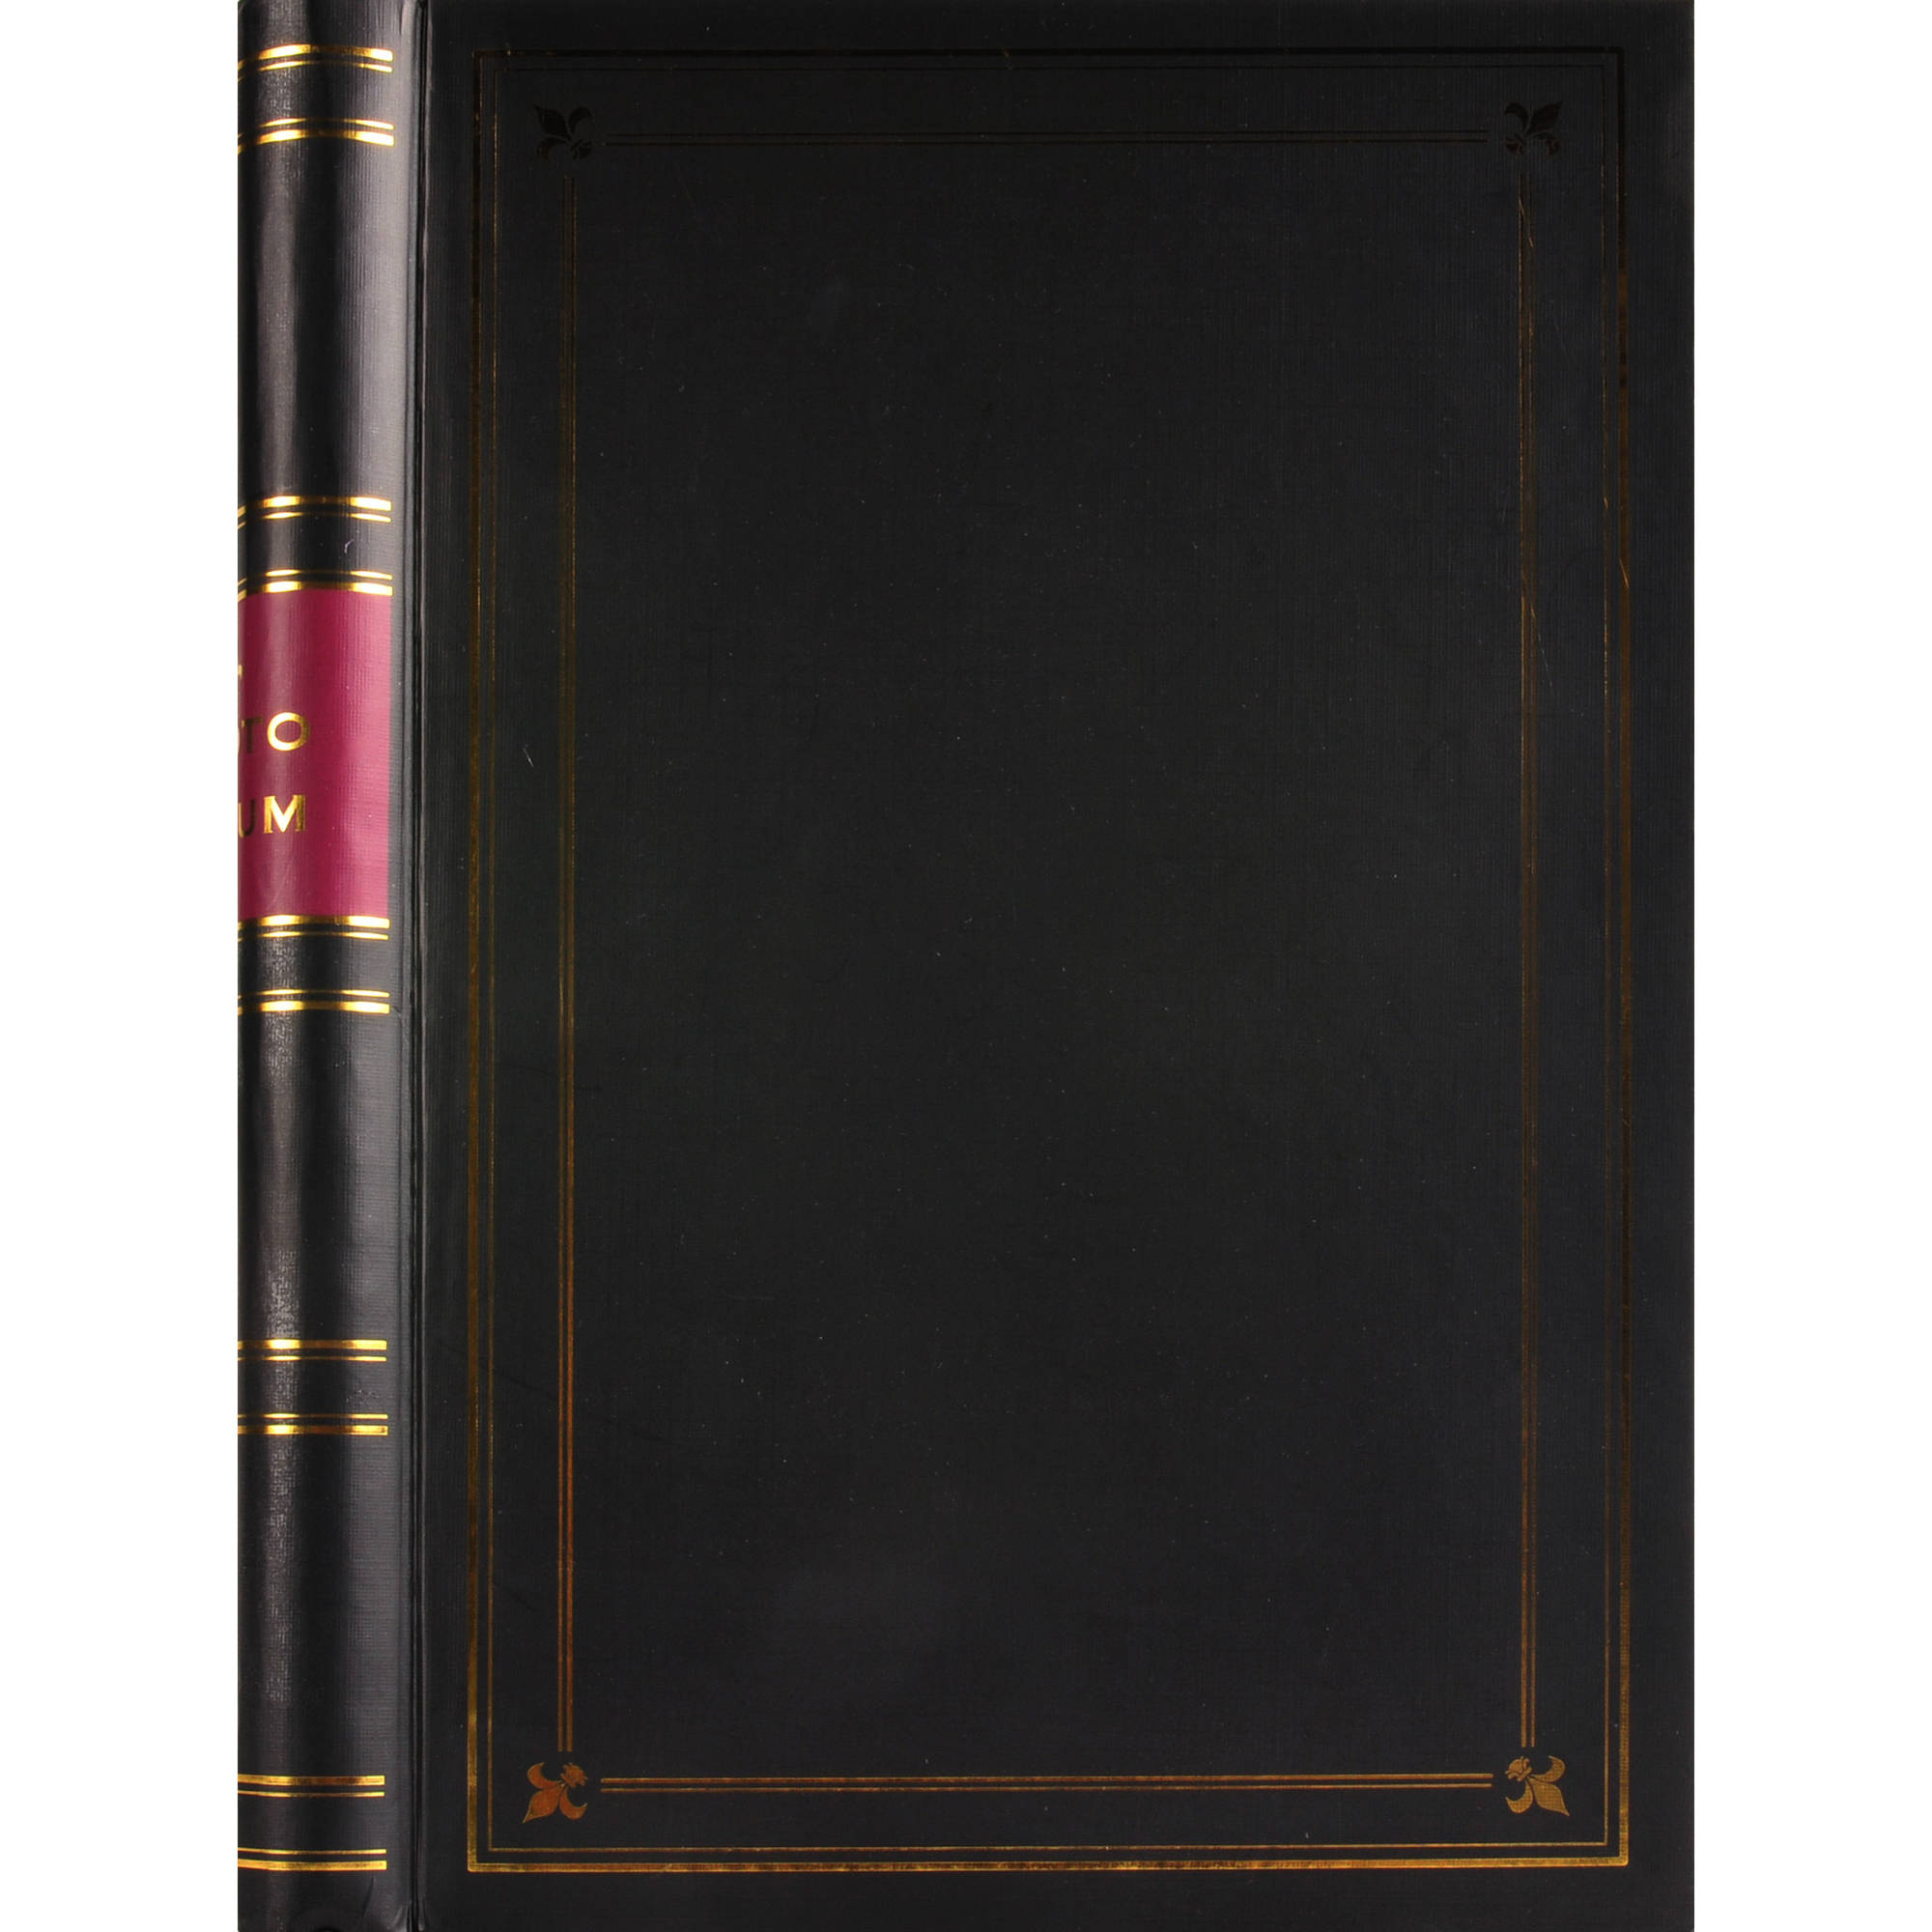 Pinnacle Frames and Accents 3Up Spiral Black Photo Album